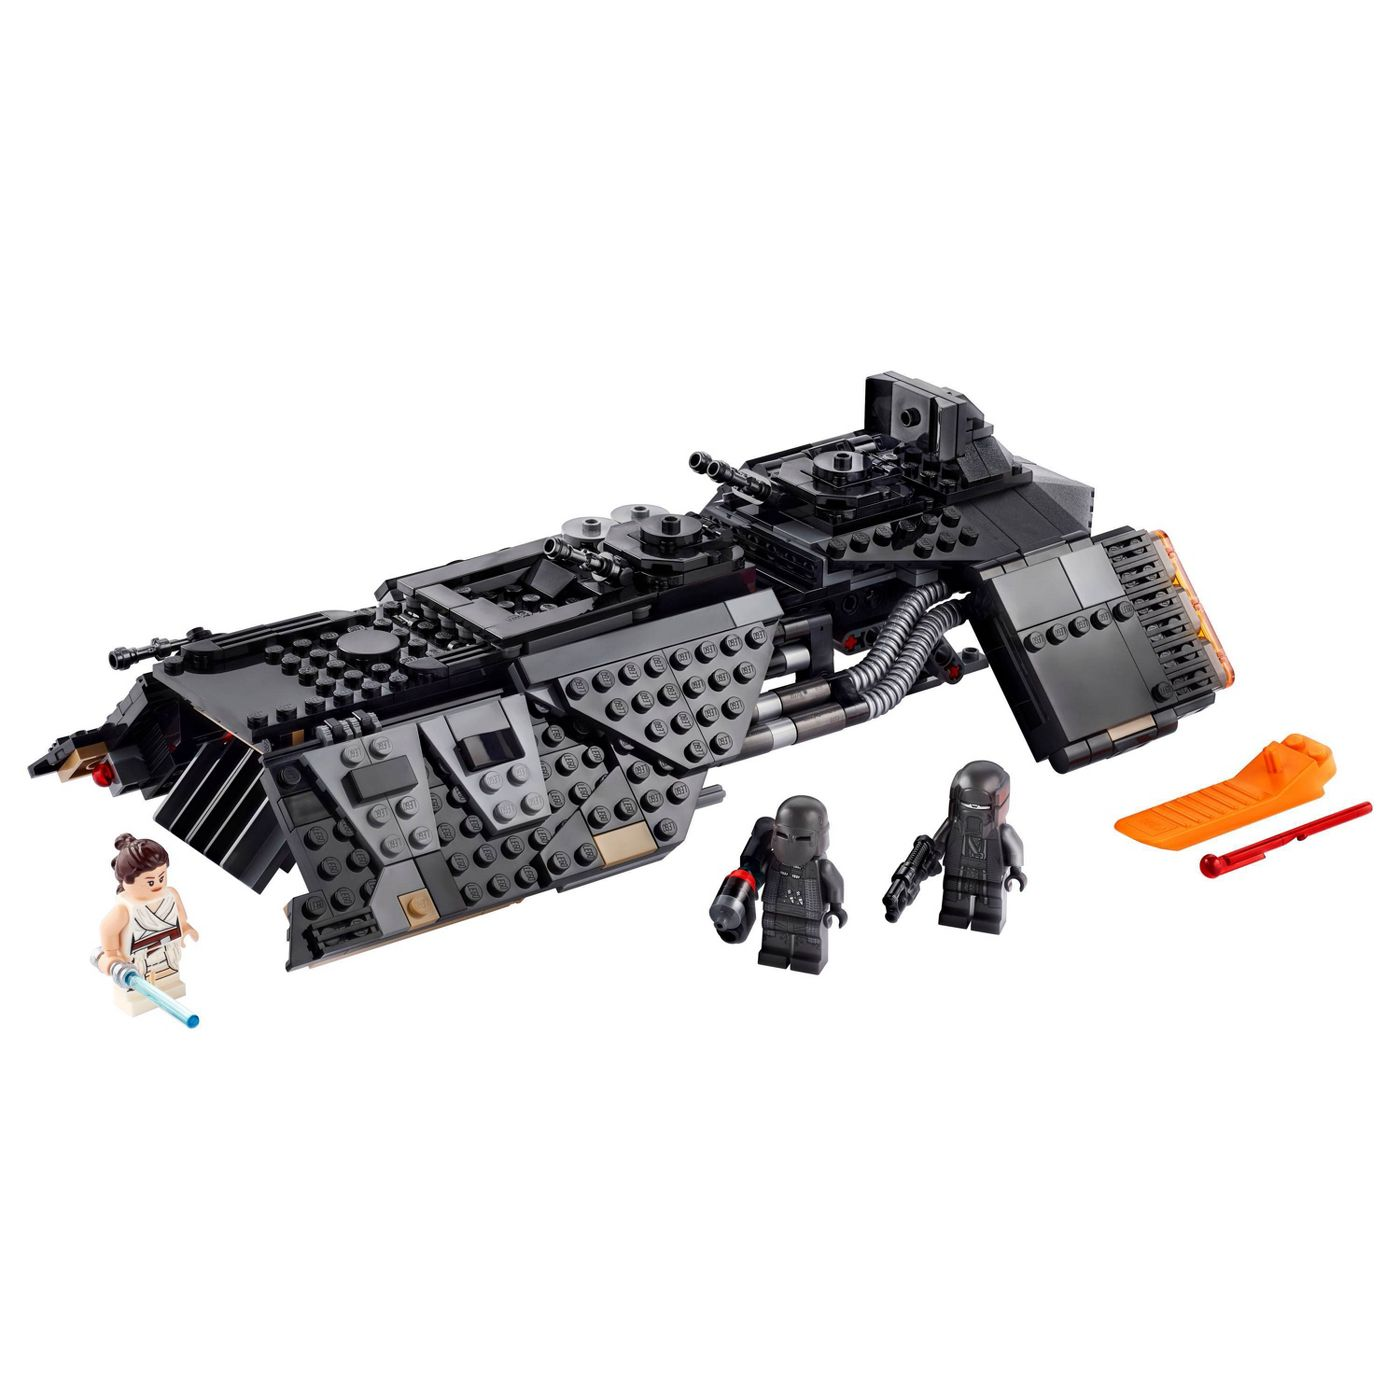 LEGO Star Wars The Rise of Skywalker Knights of Ren Transport Ship 75284